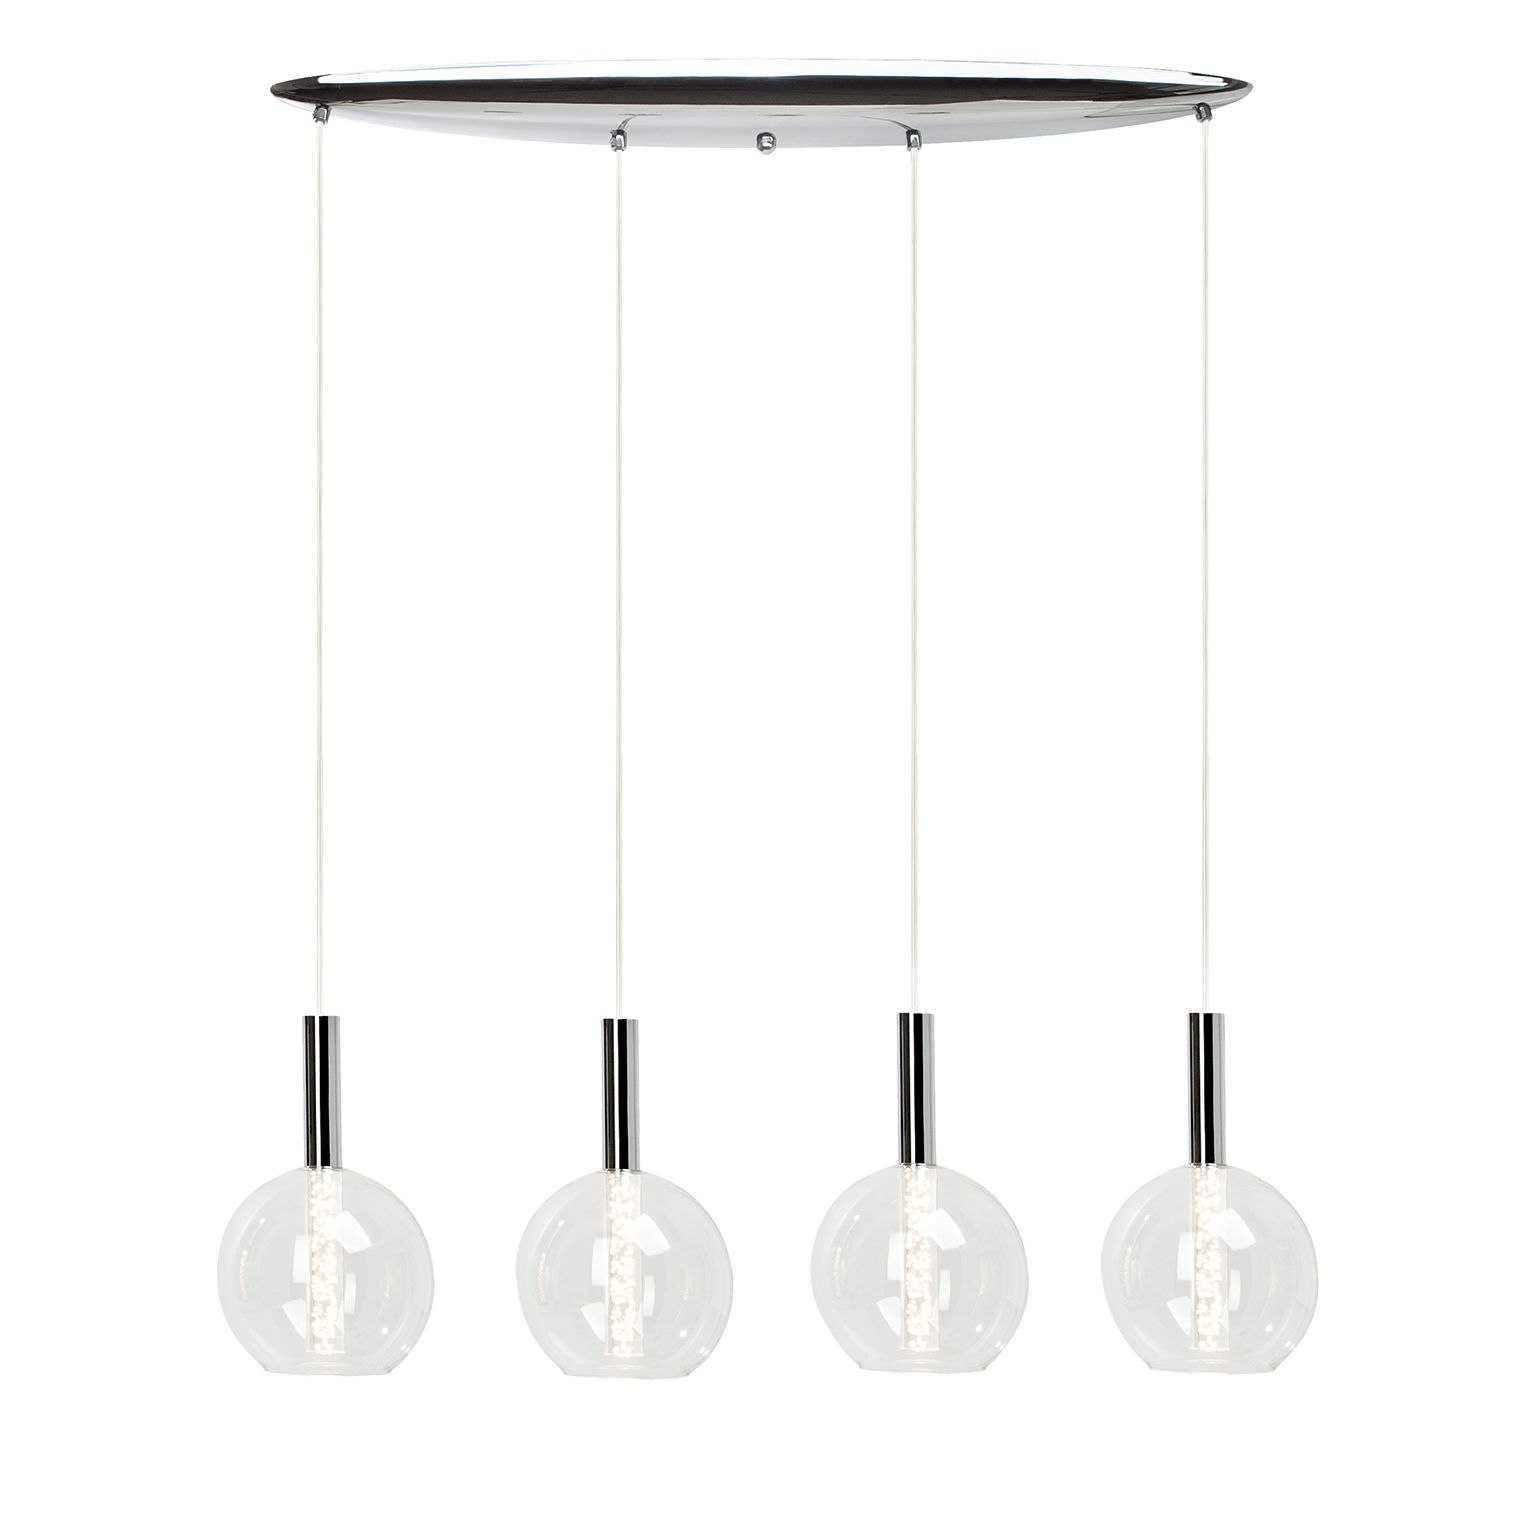 Suspension LED Elegant